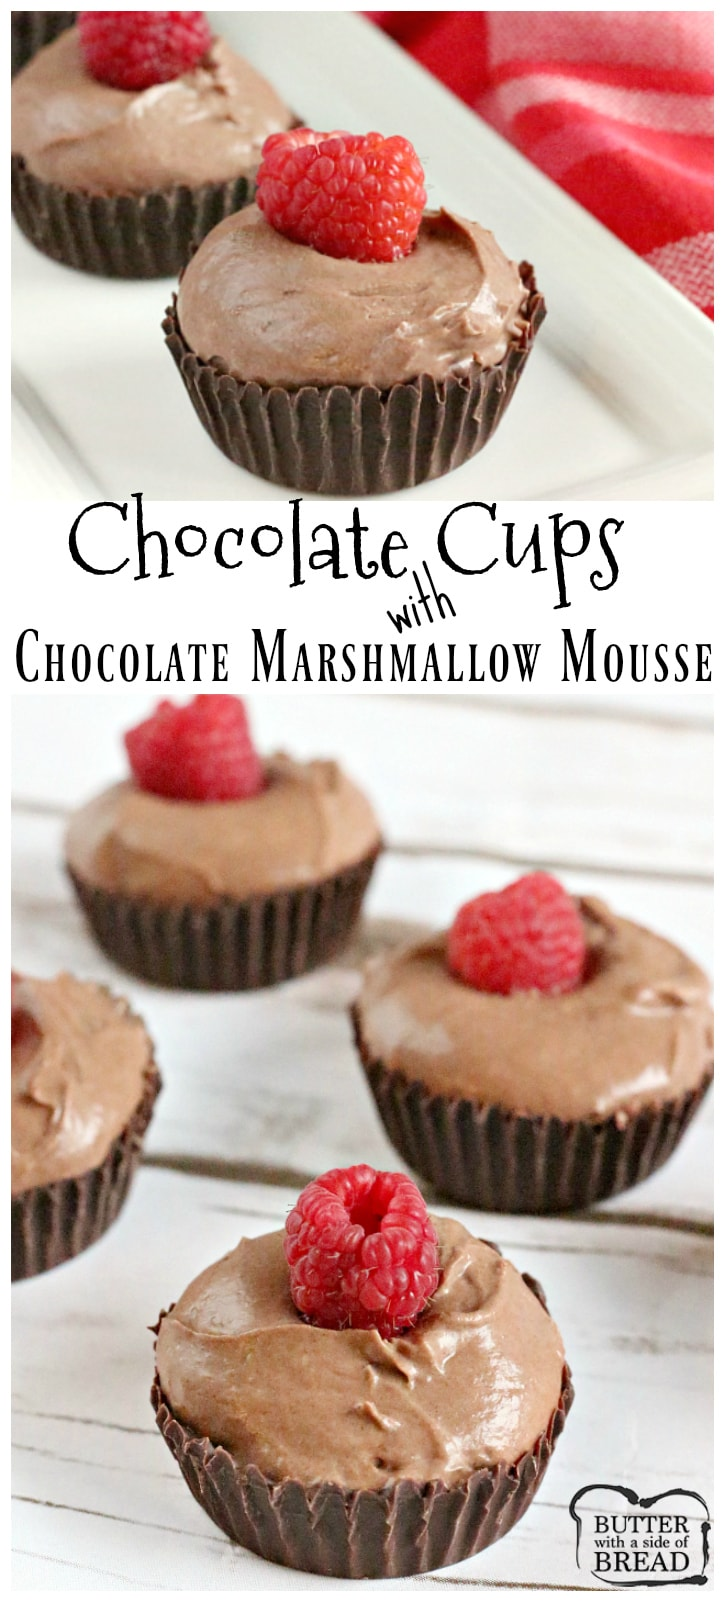 Show stopping dessert with little effort- Chocolate Cups filled with Chocolate Marshmallow Mousse is incredible! Butter With A side of Bread